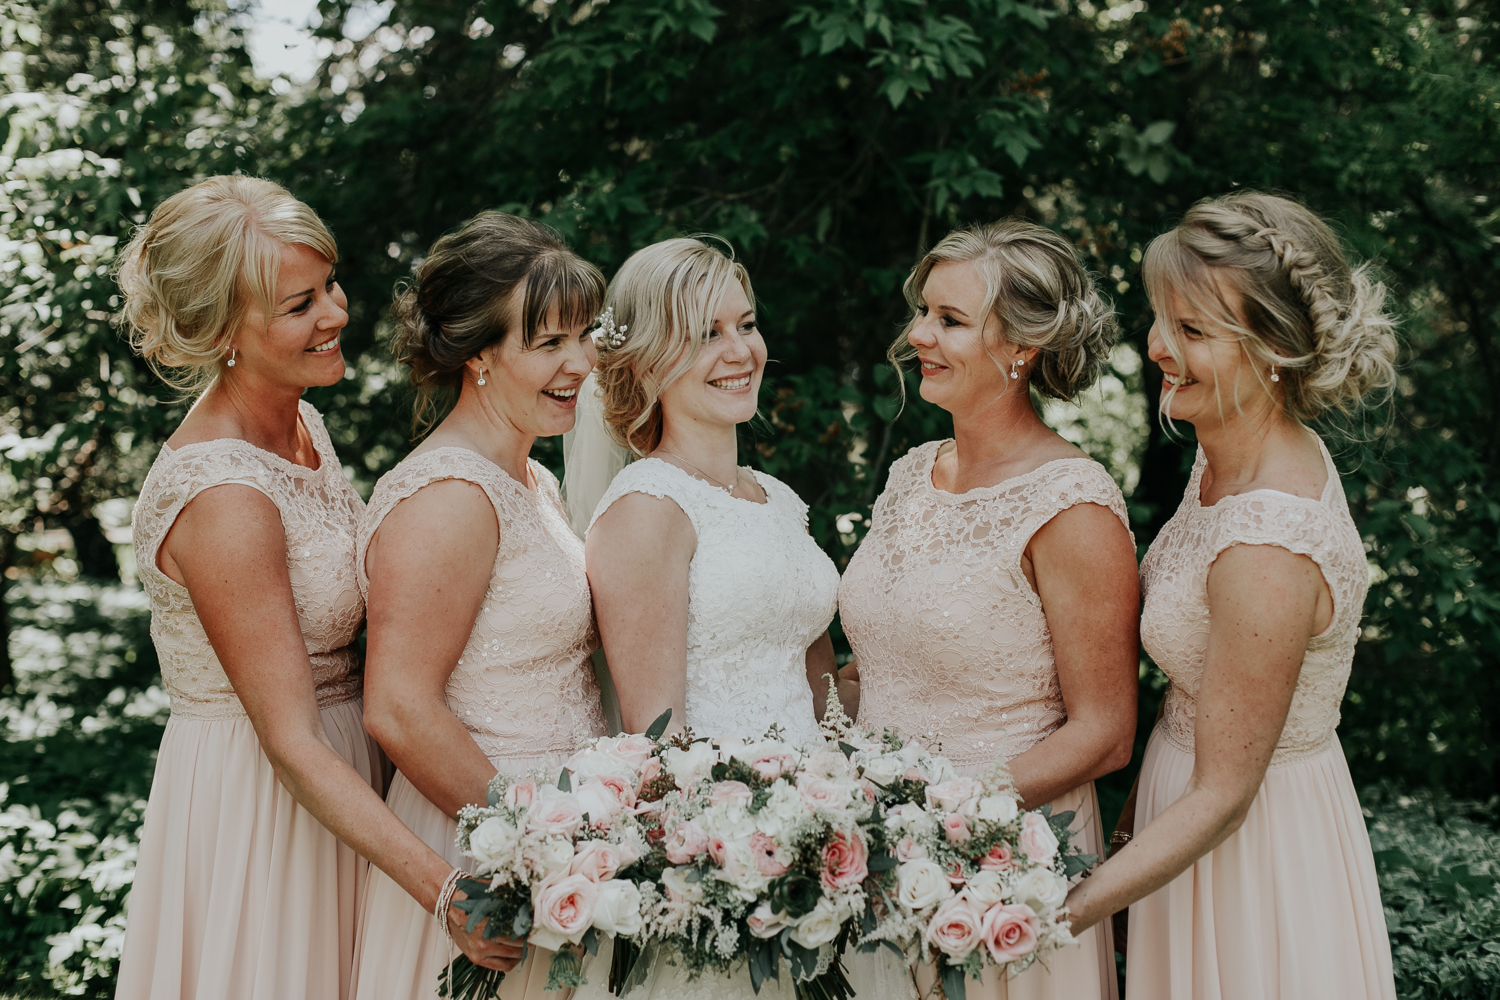 norland-estate-wedding-lethbridge-photography-love-and-be-loved-photographer-picture-image-photo-9.jpg